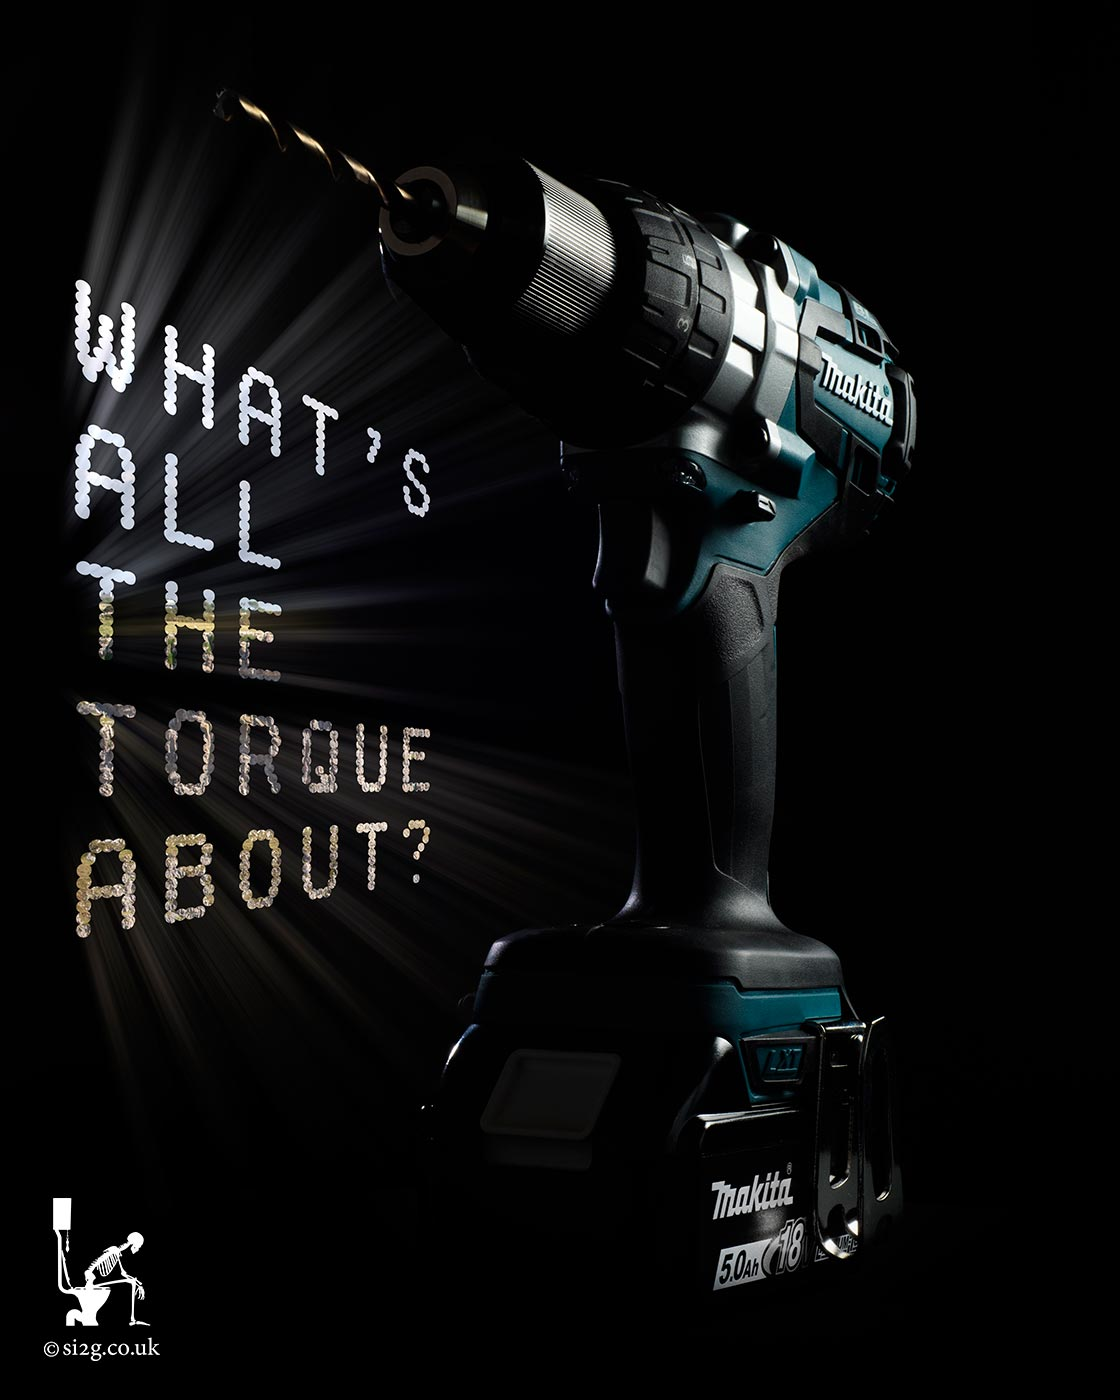 Whats All The Torque? - Photograph and copy for a review article.  The concept was to photograph the drill, make it look modern and design the text in some way to tie it together.  We decided upon using text that looks like holes drilled into the backdrop.  We back-light the photograph to make it look like it was illuminated be the light spilling in through the text.